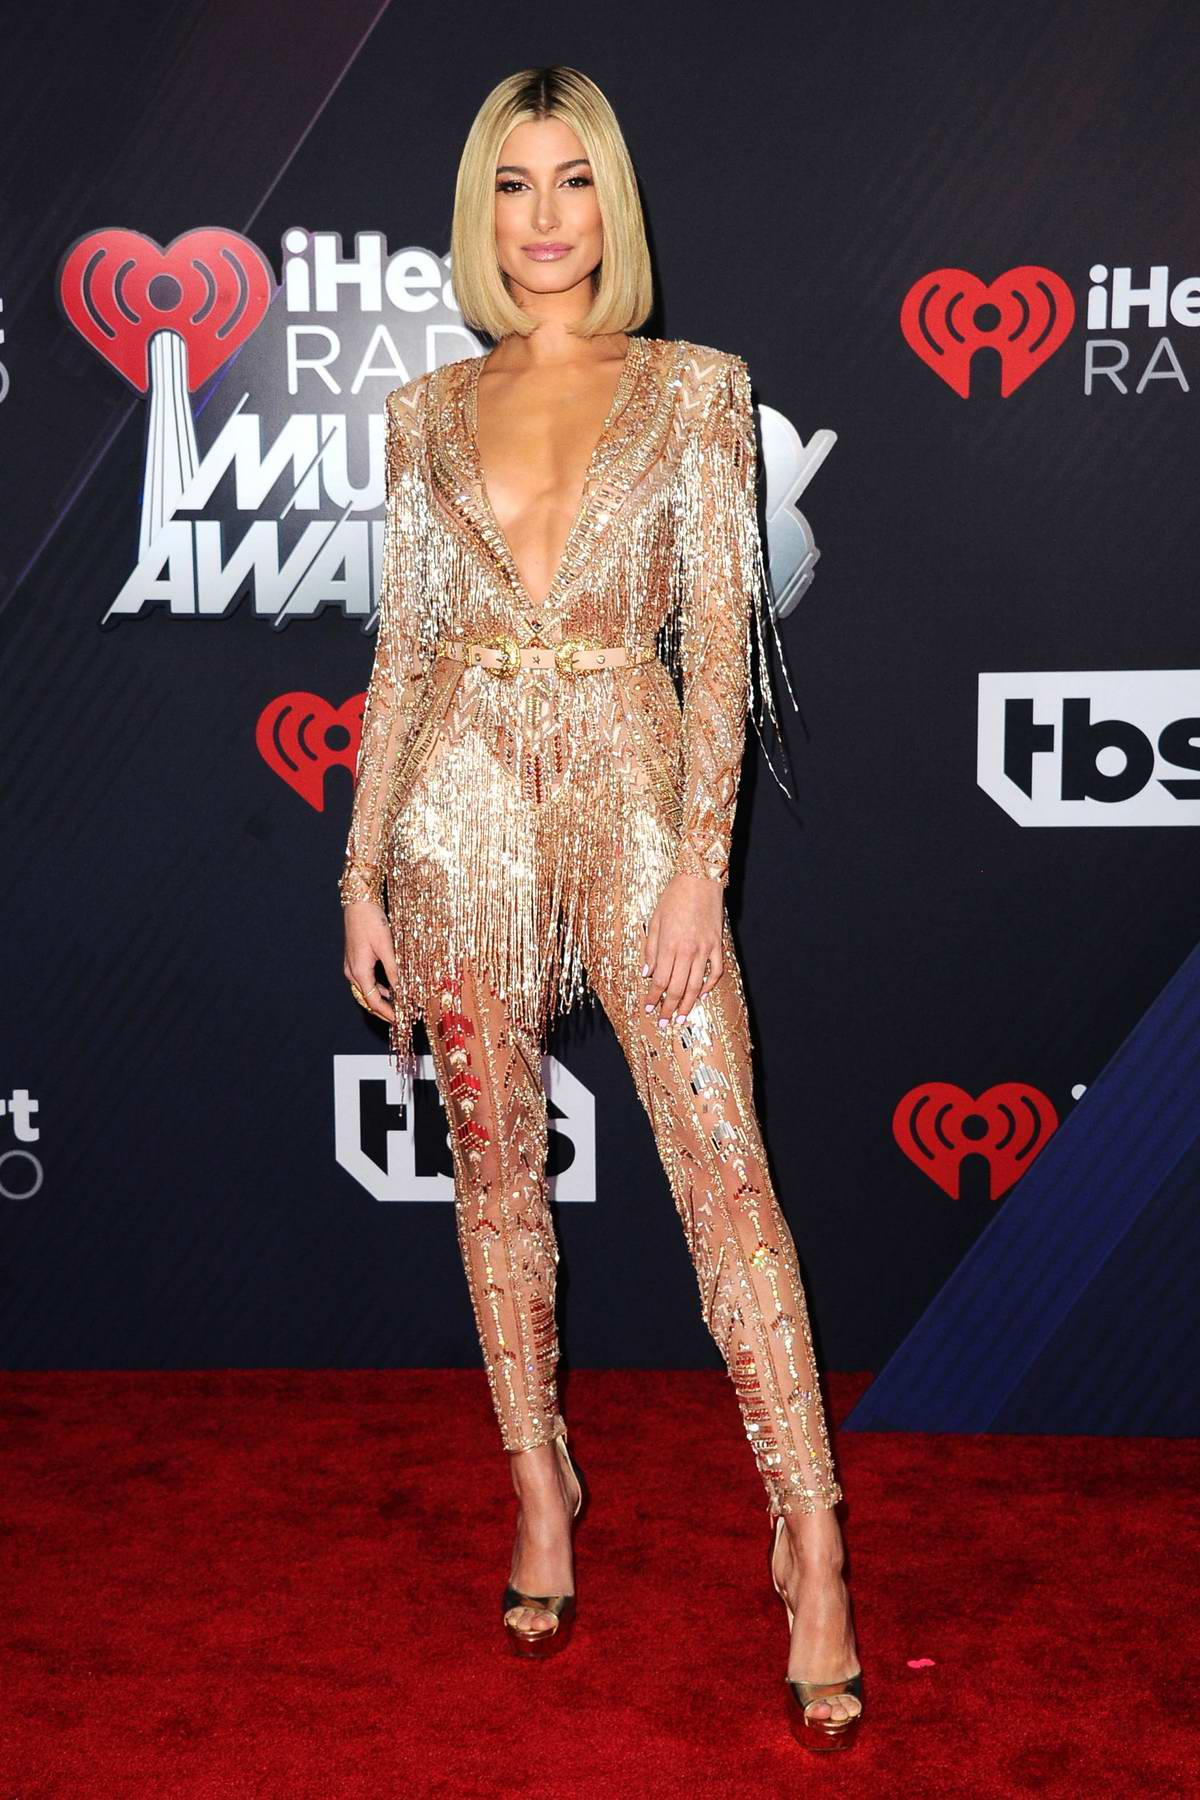 Hailey Baldwin attends the 2018 iHeartRadio Music Awards at The Forum in Inglewood, California